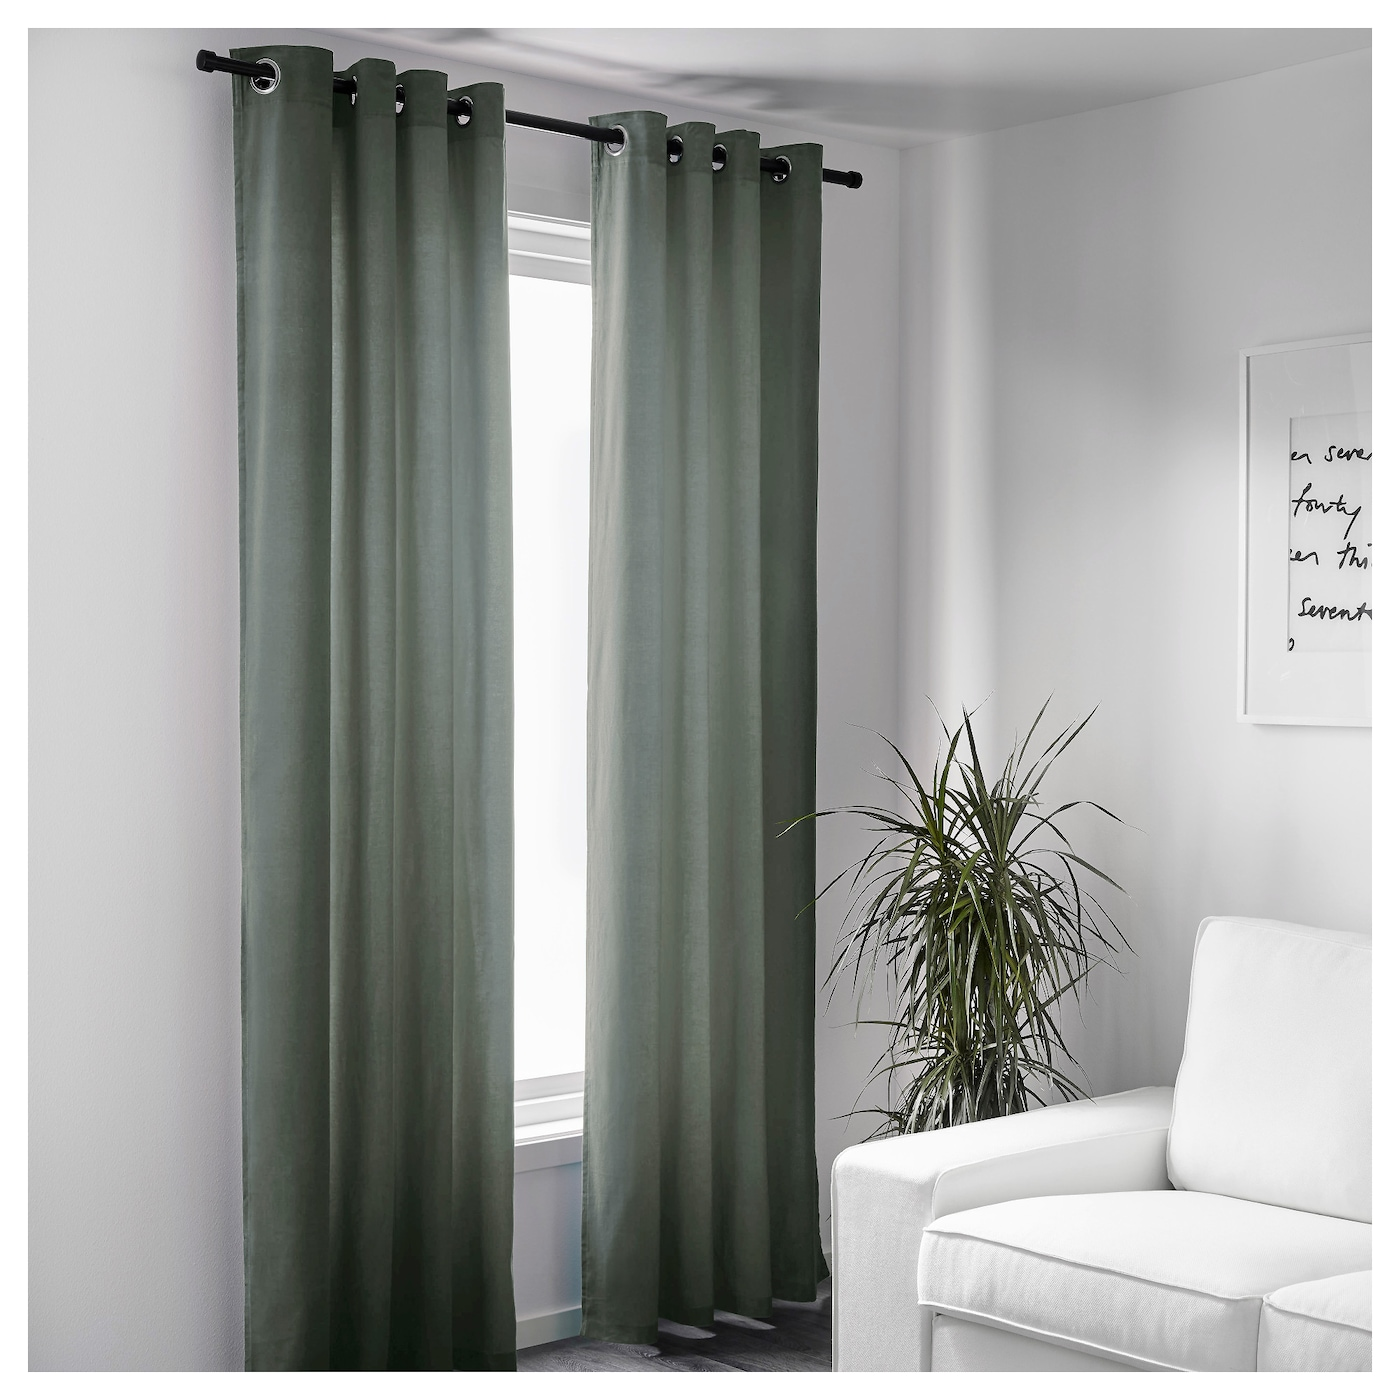 treatment doorsbest for bamboo treatments of blinds velvet decoration curtains woodenbest outdoor target window uk ikea white black matchstick image sliding decorating glass walmart